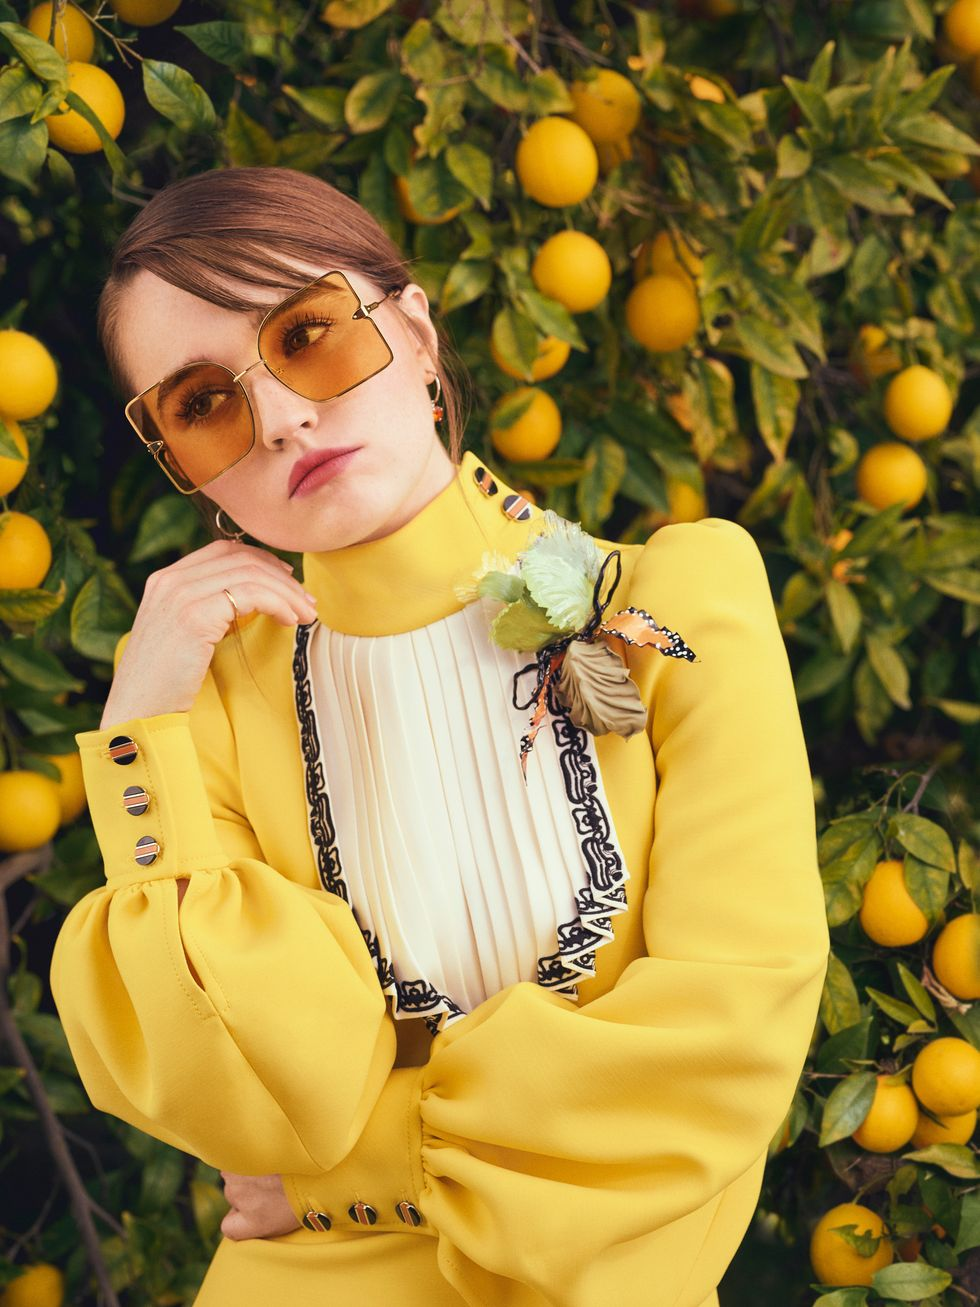 Actress Kaitlyn Dever wears a yellow dress as she stands in front of an orange tree full of fruit.